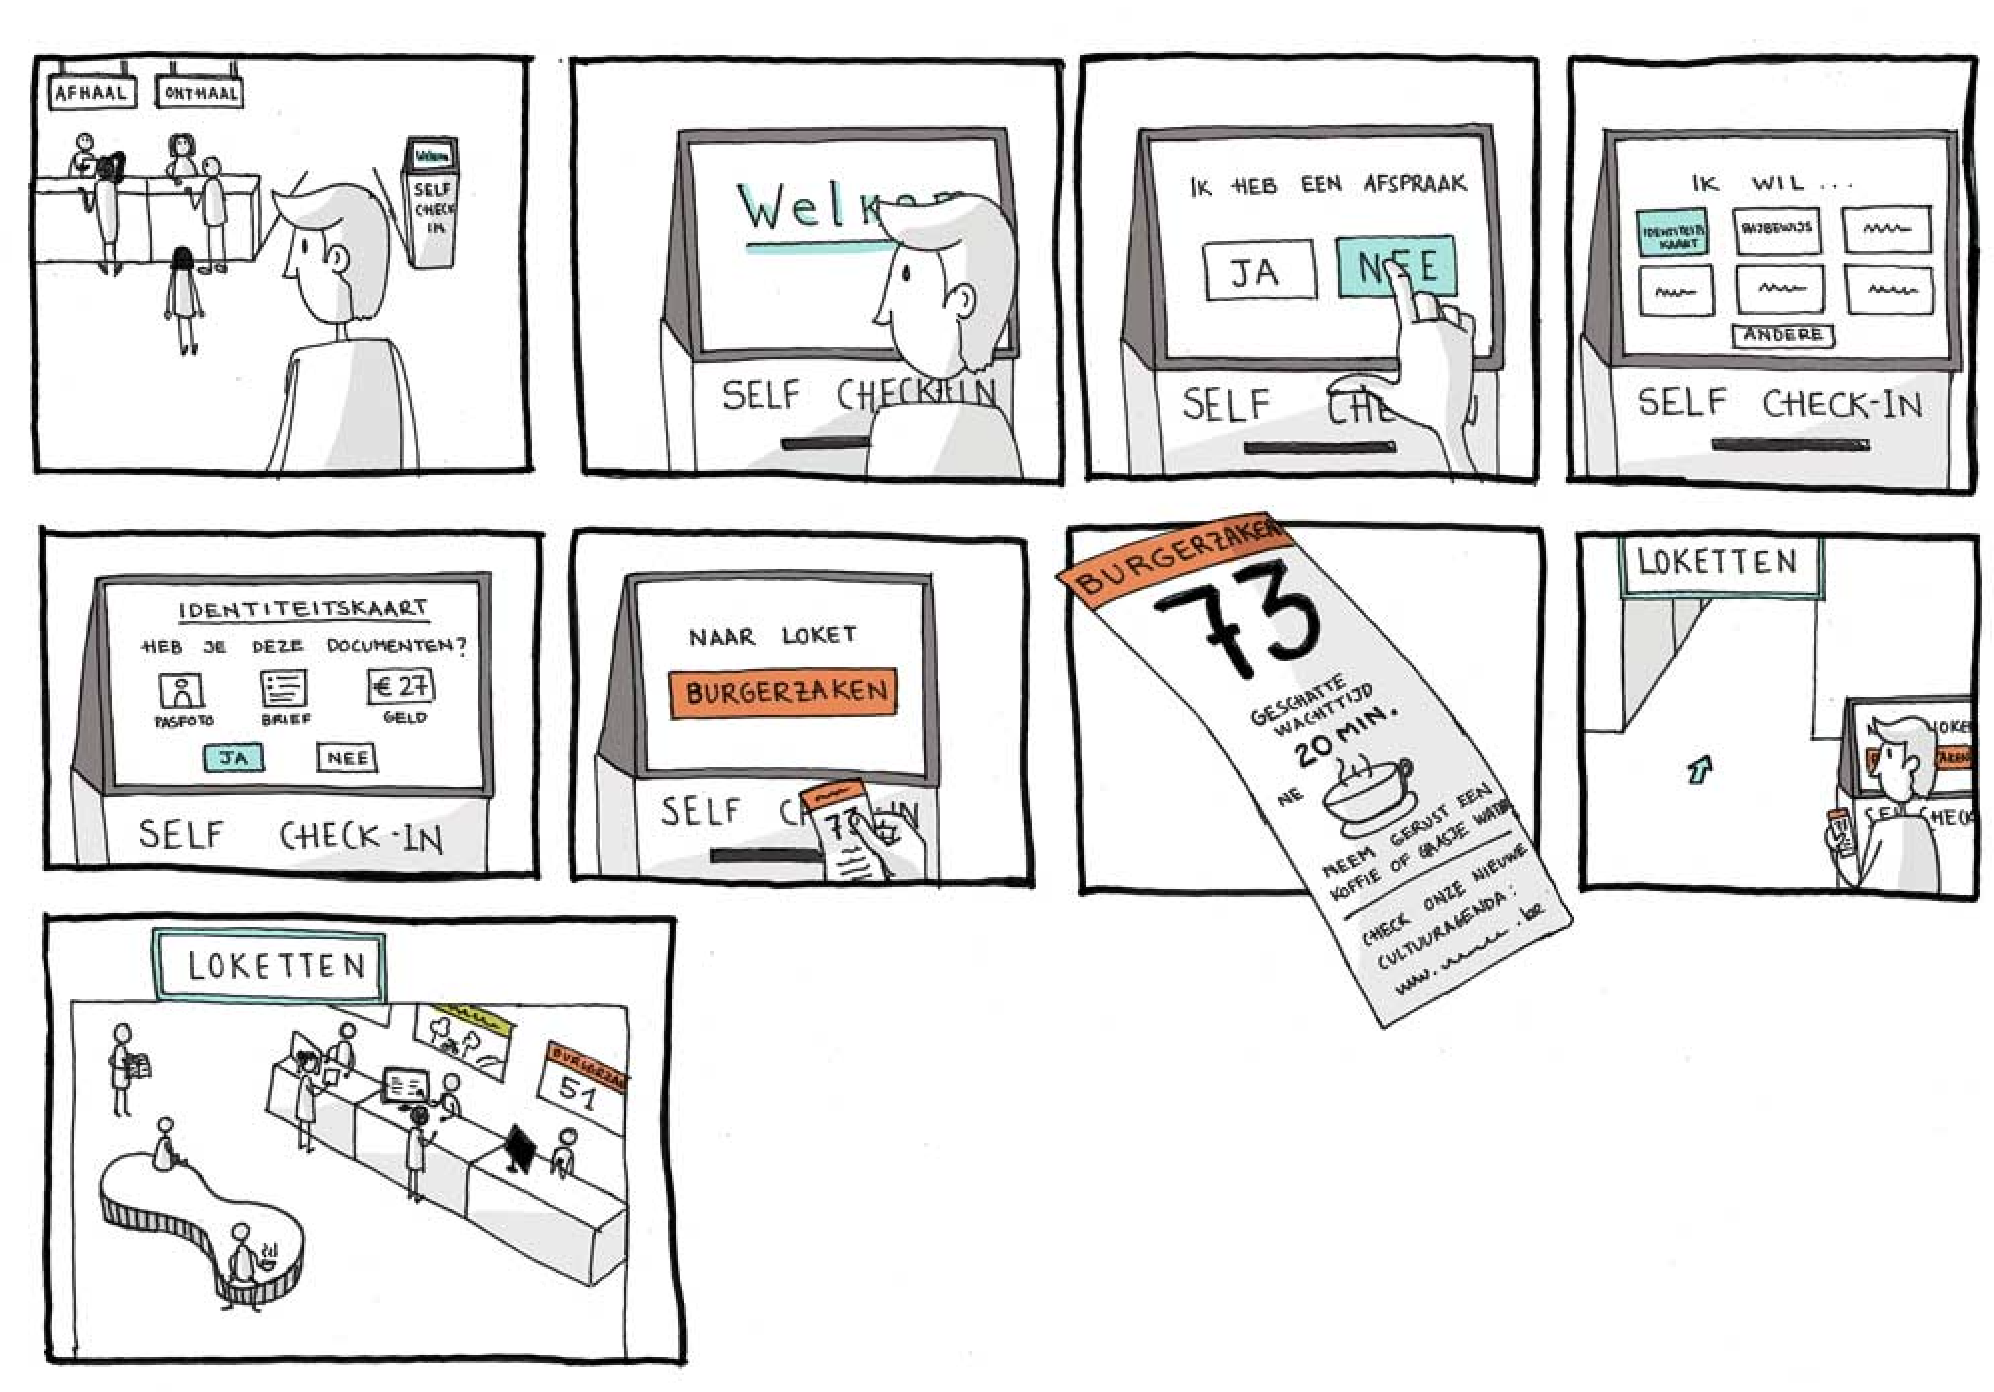 Storyboard for the town of zedelgem